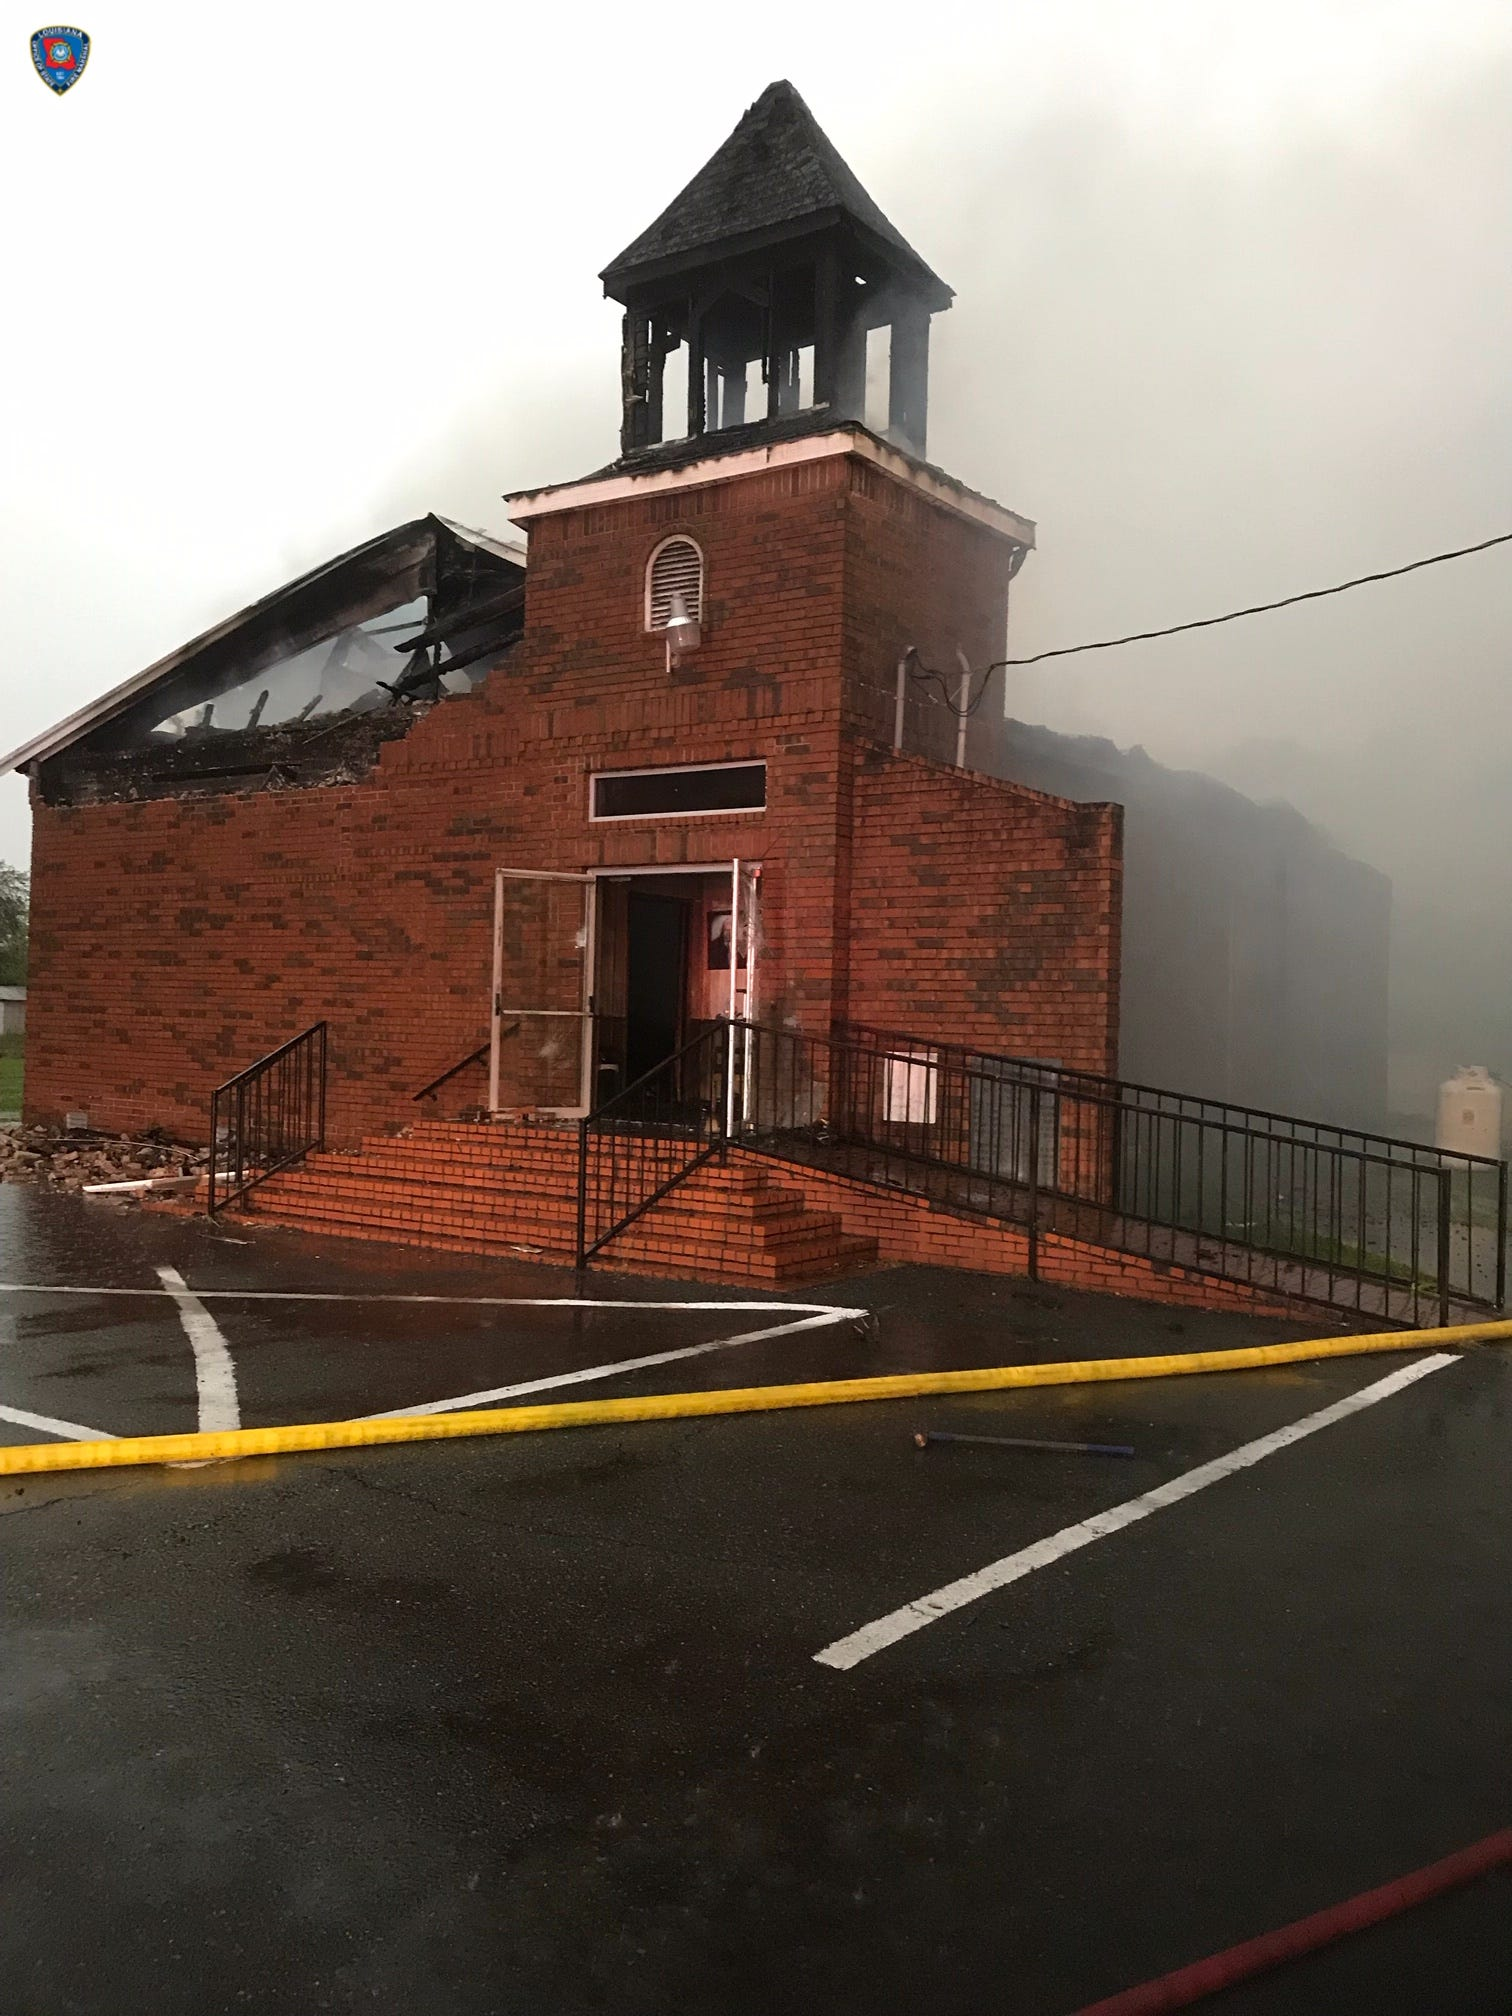 'Suspicious' fires destroy three black churches in 10 days in Louisiana parish